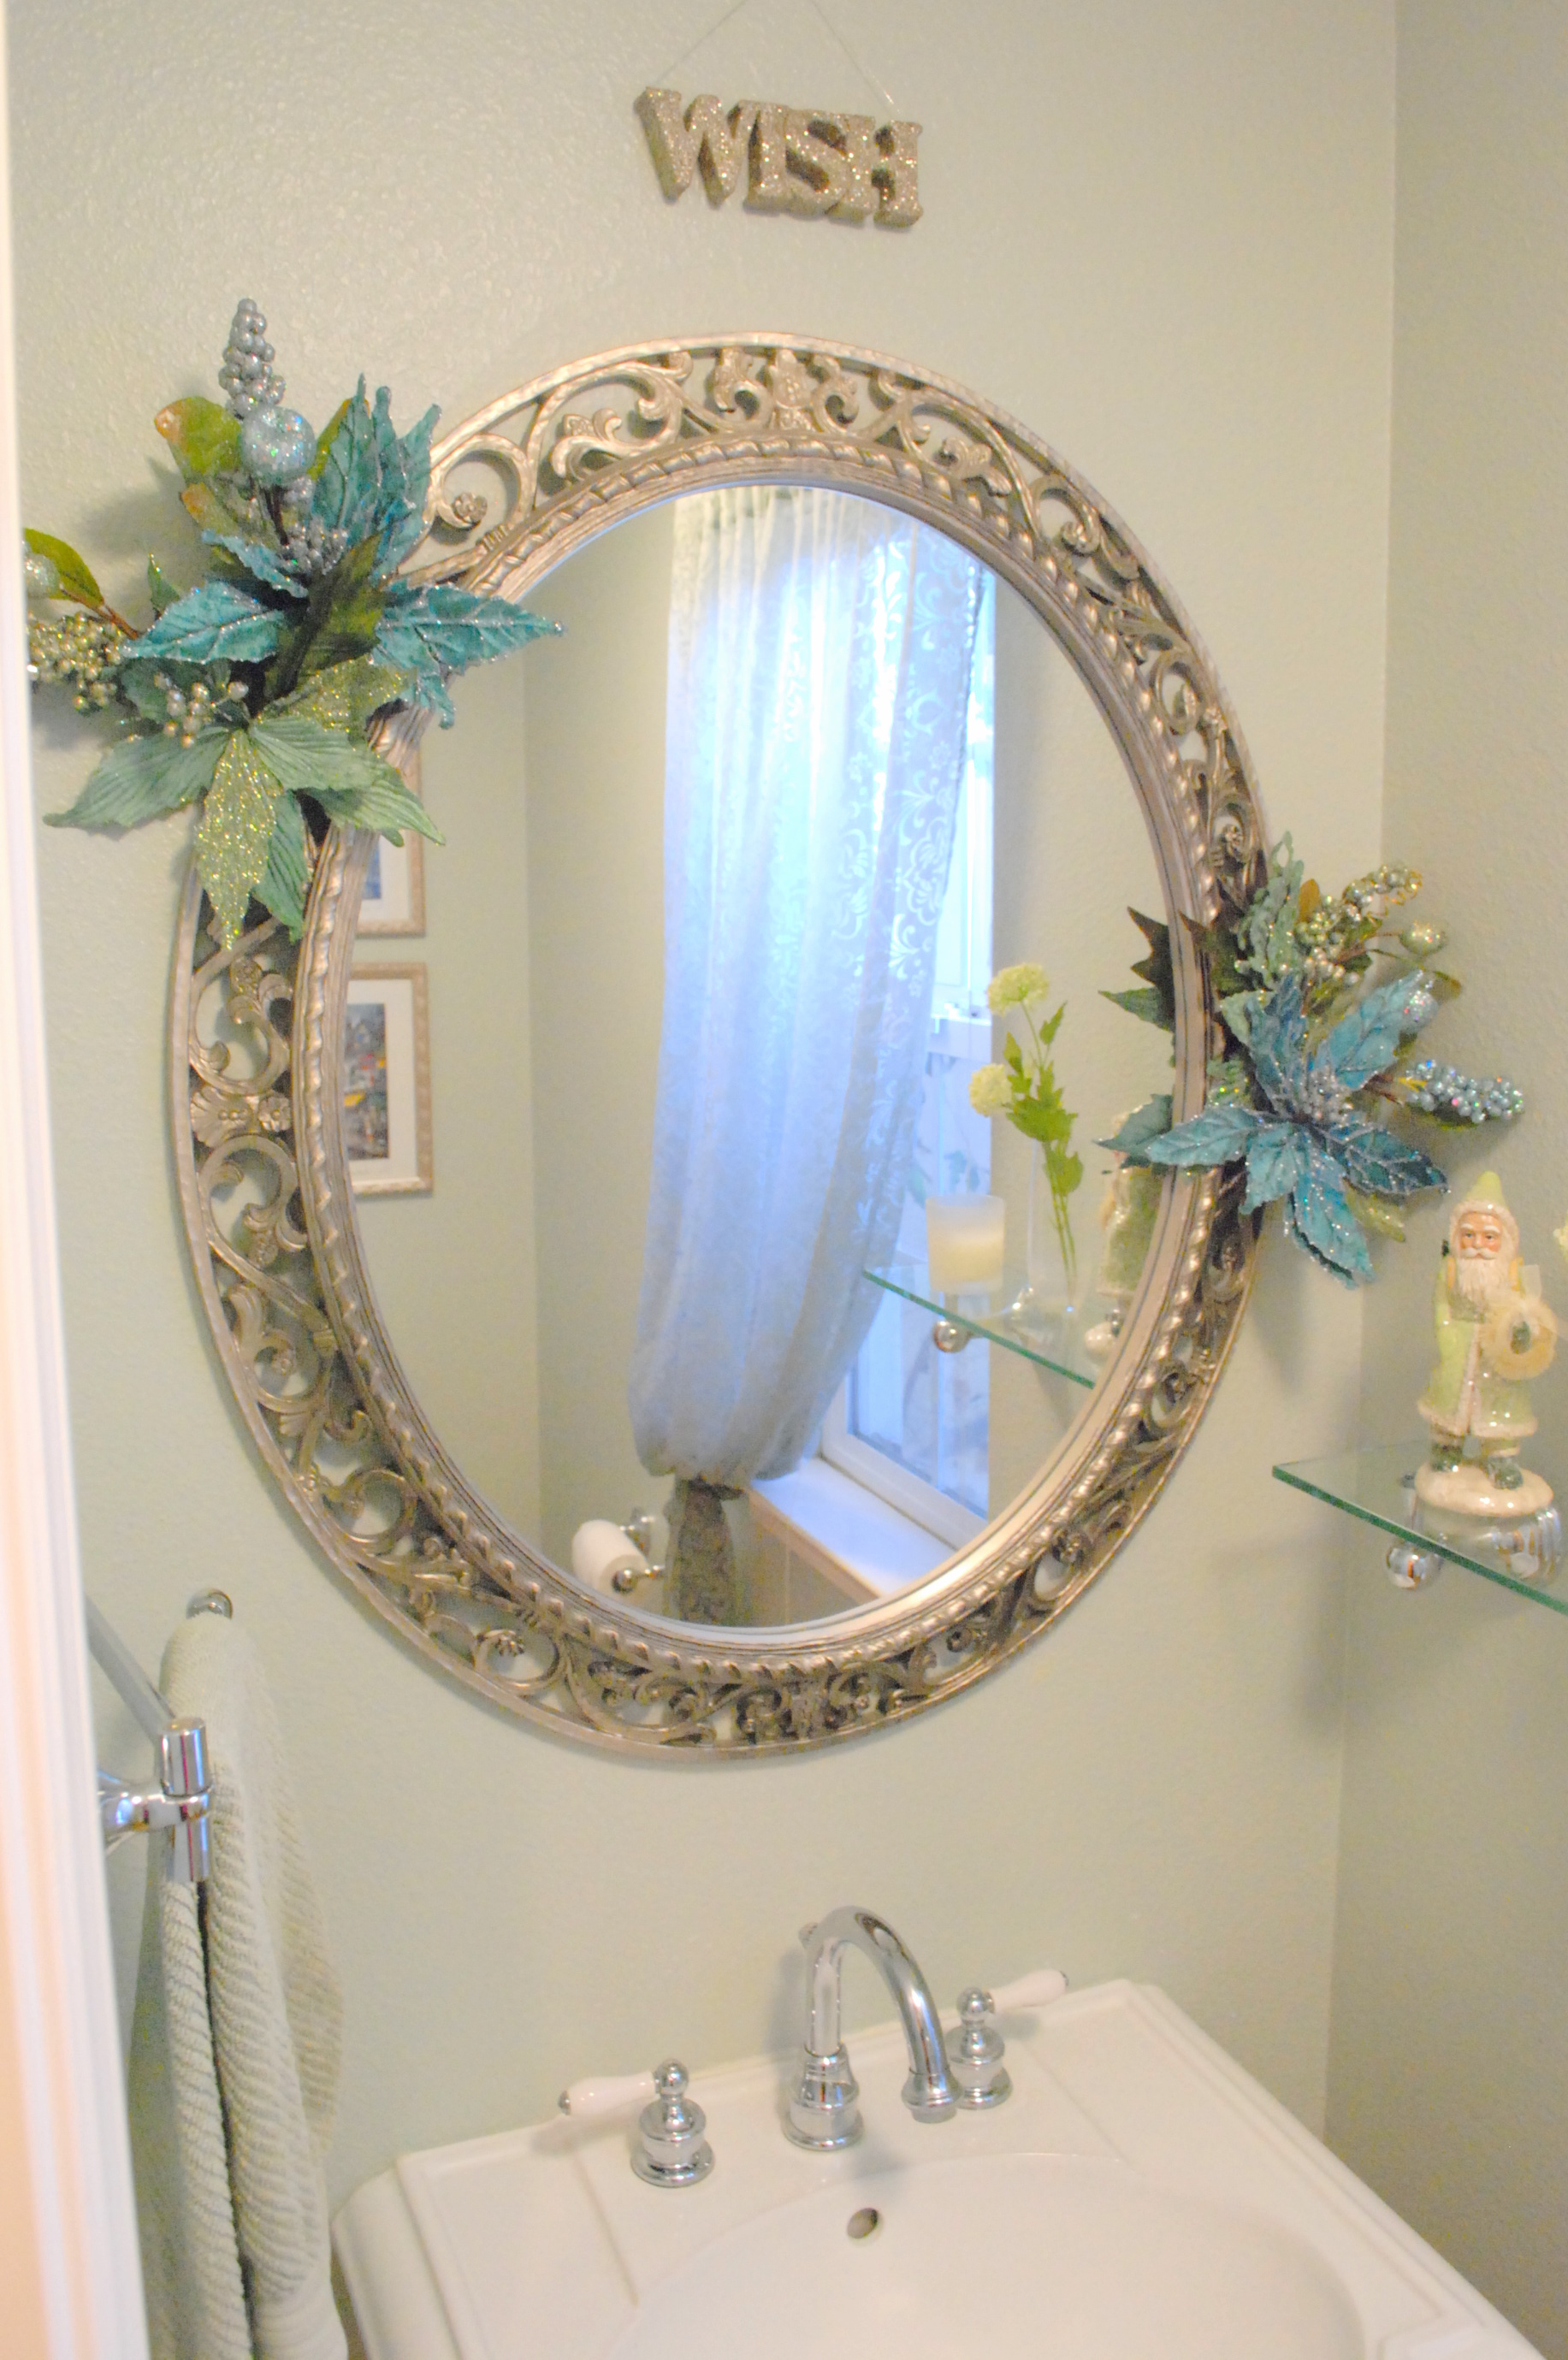 Bathroom Mirror Decor Ideas beautify your homedecorating with mirrors decozilla. mirror